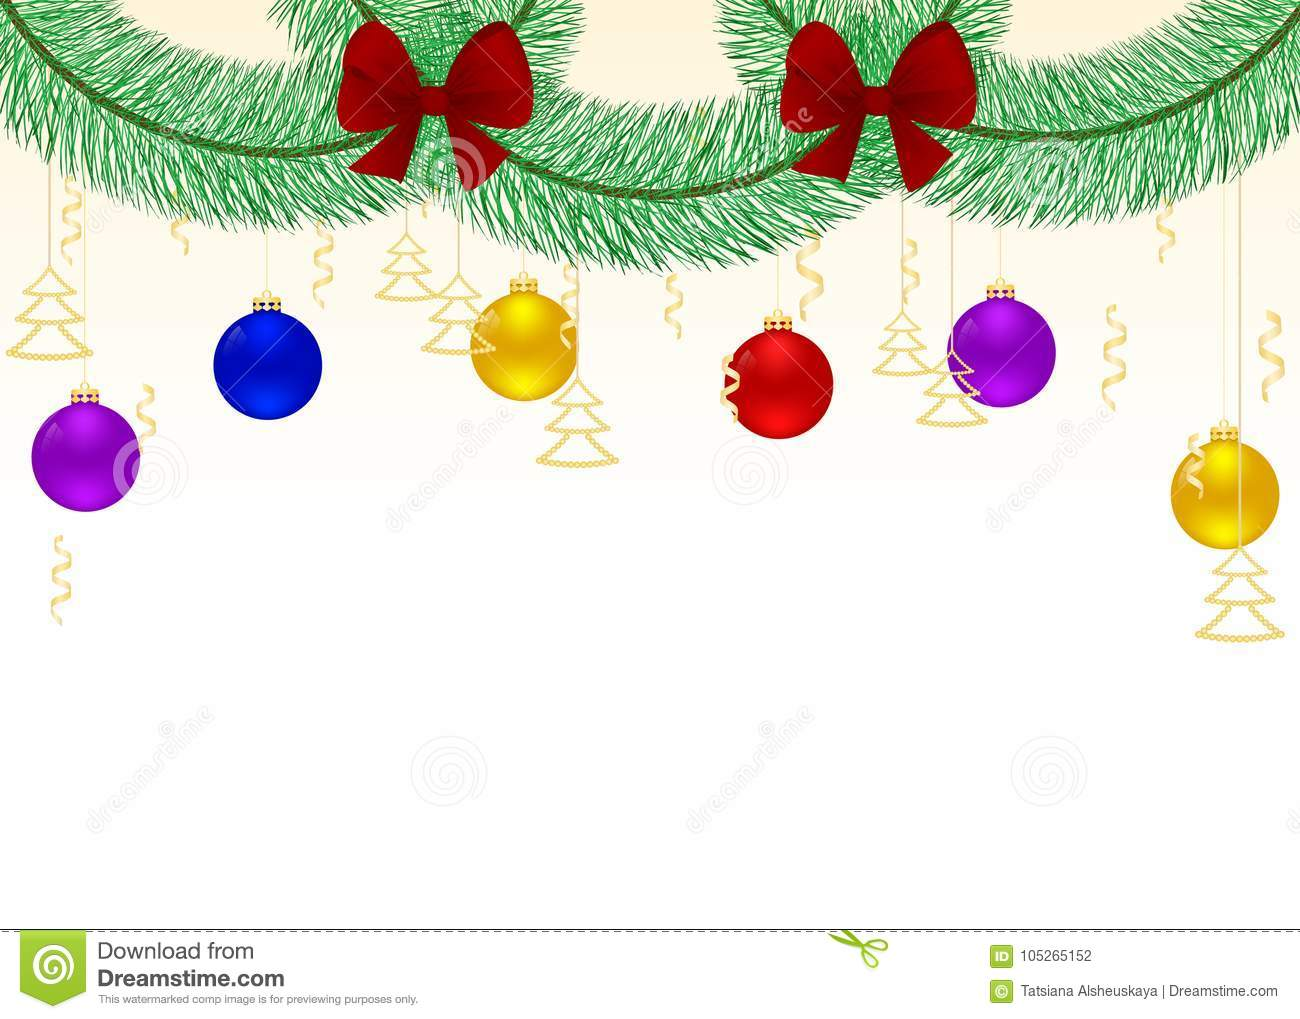 garland of fir branches with red bows and hanging christmas colored decoration